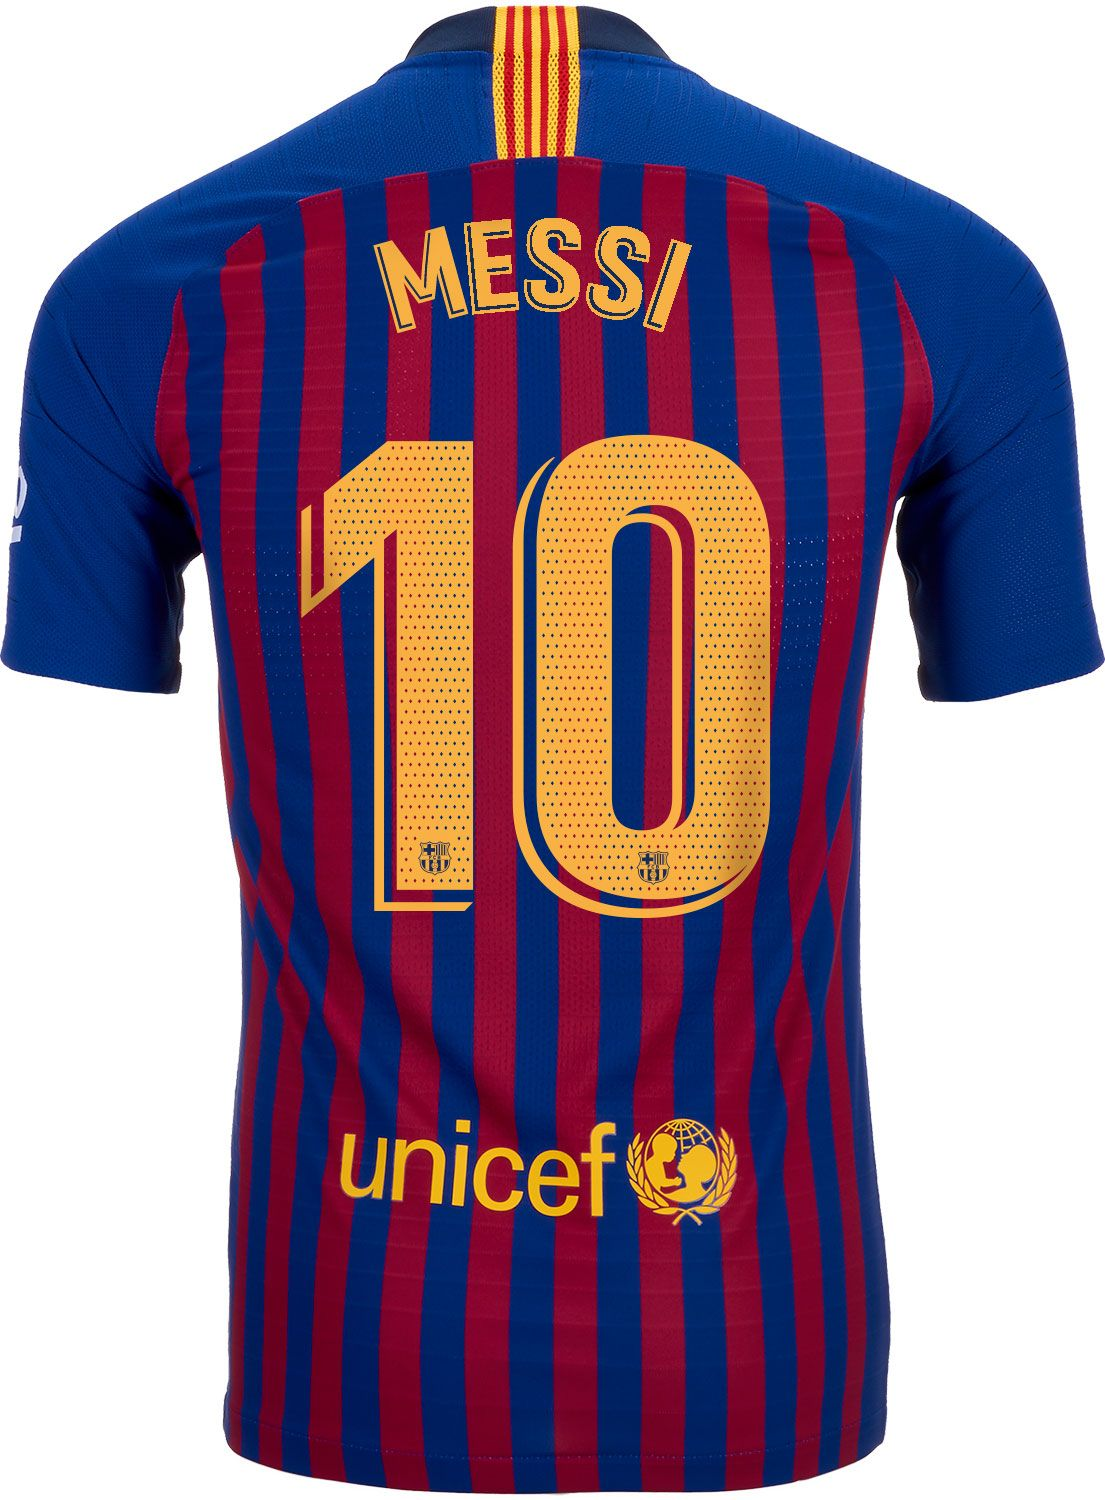 e41c9bebd 2018 19 Nike FC Barcelona Leo Messi Home Match Jersey. Buy it from  SoccerPro.